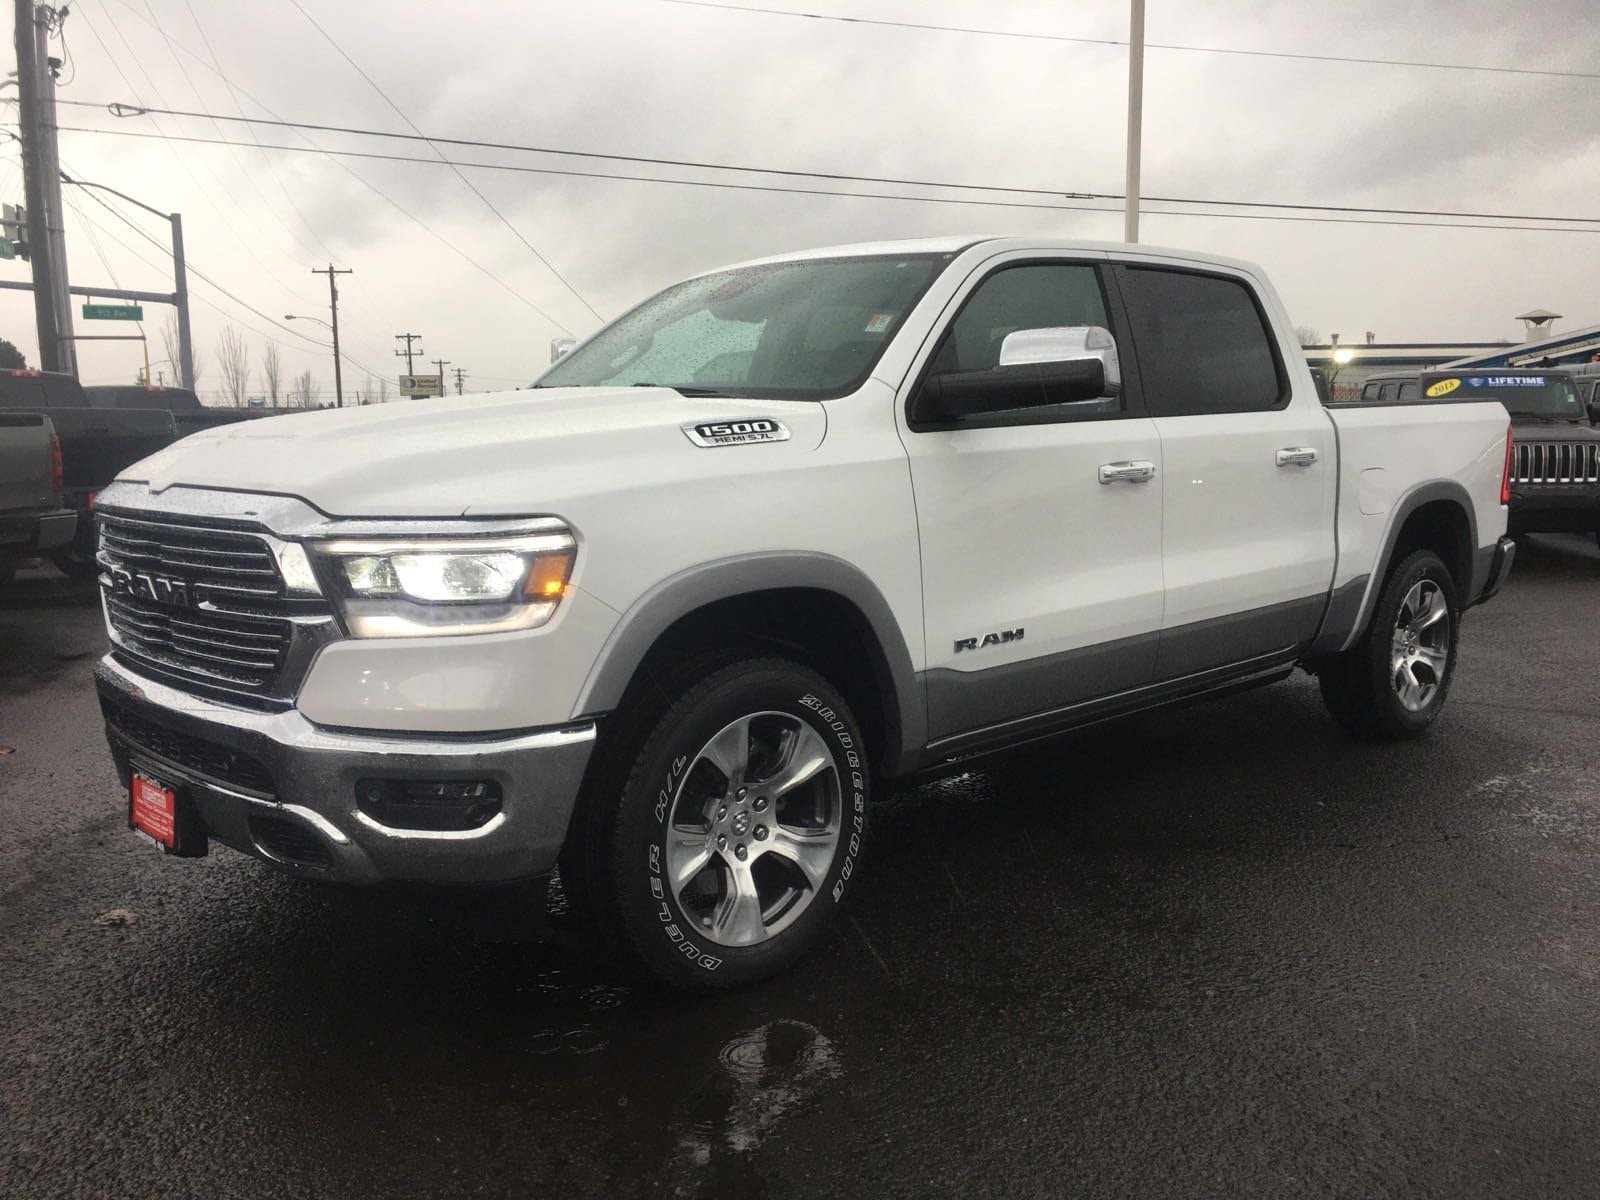 2020 Ram 1500 Crew Cab 4x4, Pickup #R1983 - photo 1